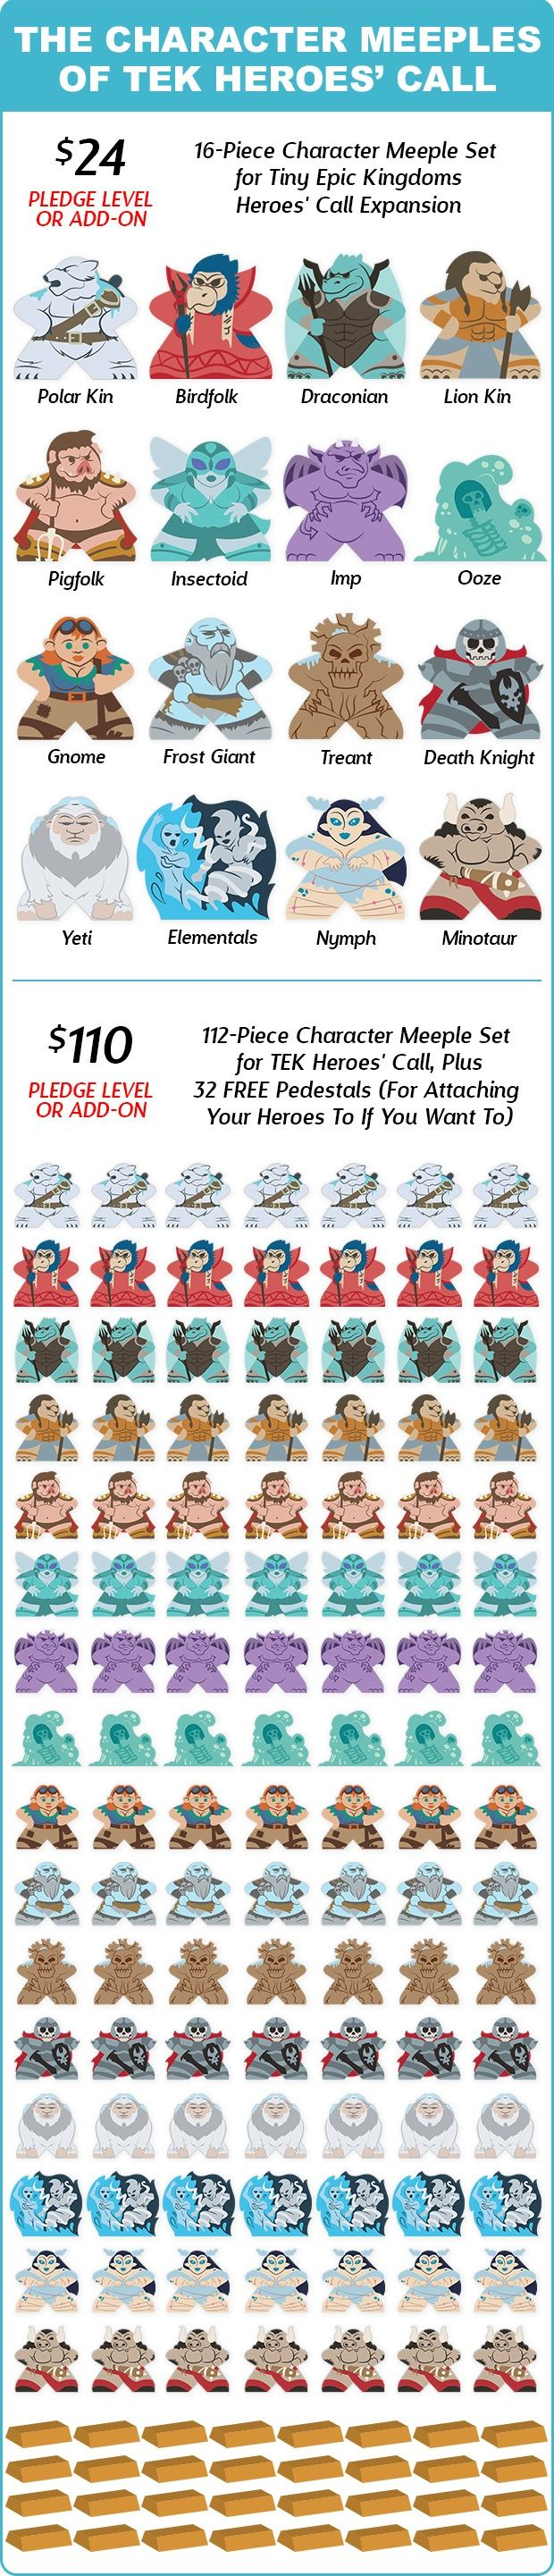 Character Design Kickstarter : Character meeples for tiny epic kingdoms heroes call by